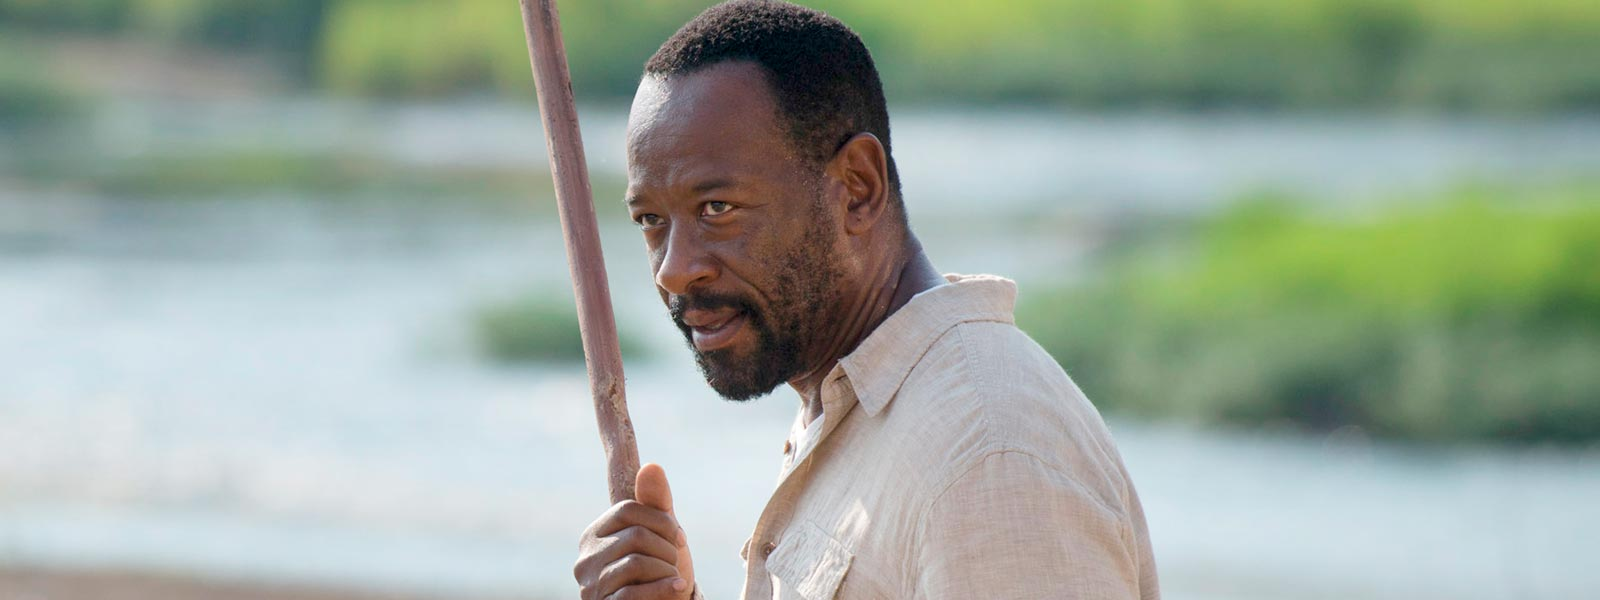 the-walking-dead-episode-604-morgan-james-post-800×600